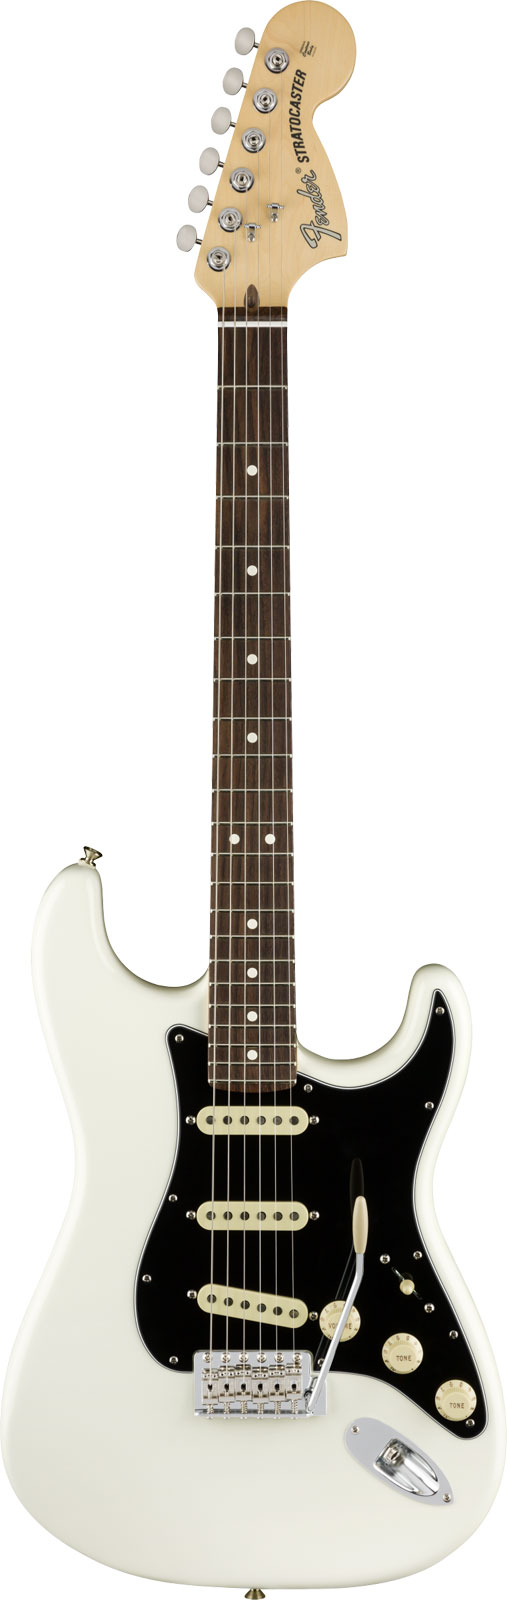 AMERICAN PERFORMER STRATOCASTER RW ARCTIC WHITE